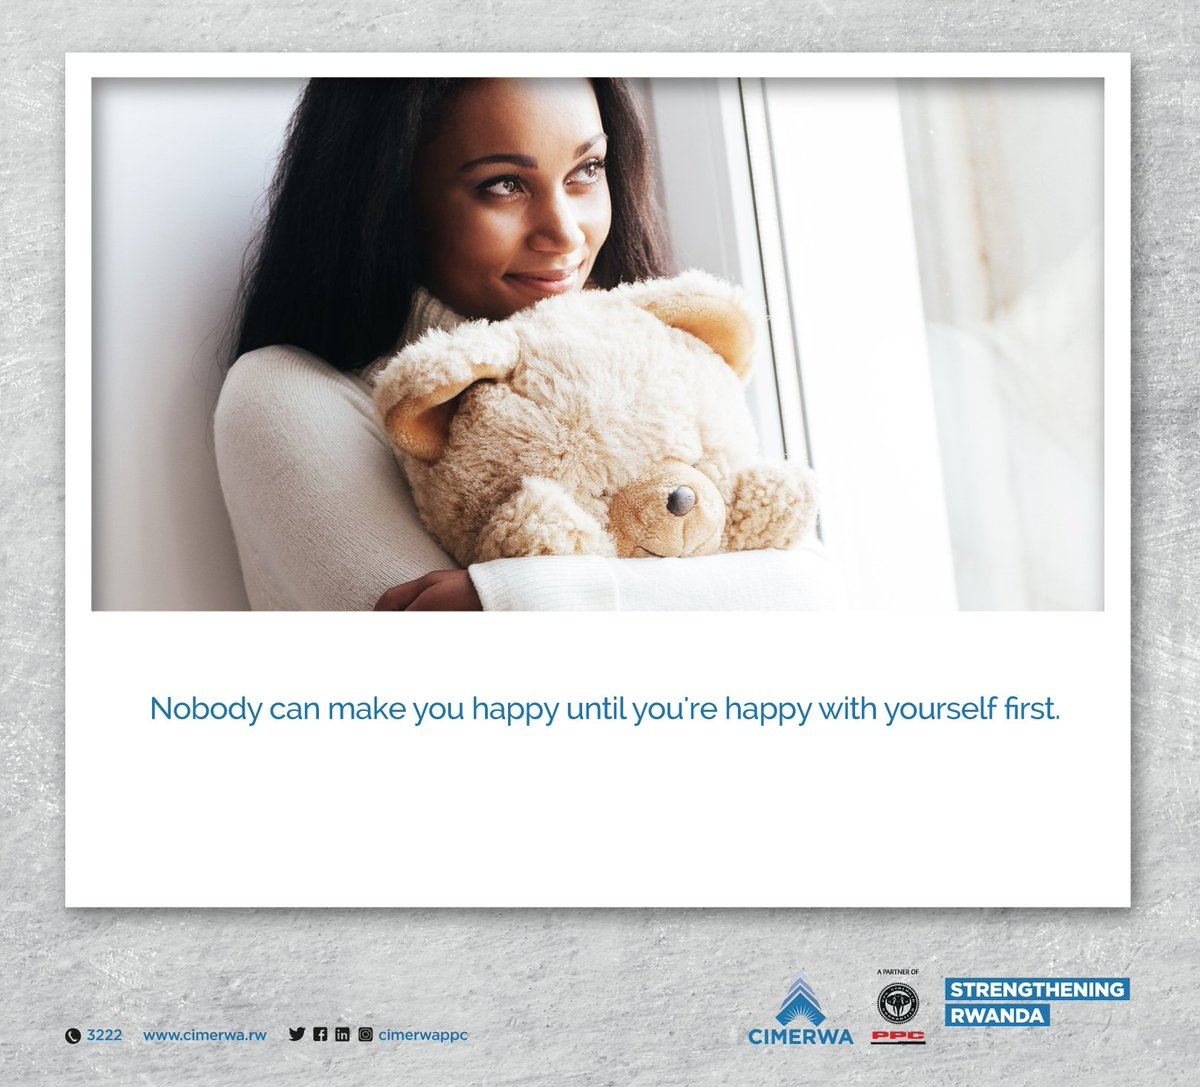 #SaturdayFunDay Nobody can make you happy until you&#39;re happy with yourself first.  Make this weekend yours!  #CIMERWA #StrengtheningRwanda<br>http://pic.twitter.com/osb8PFb57g